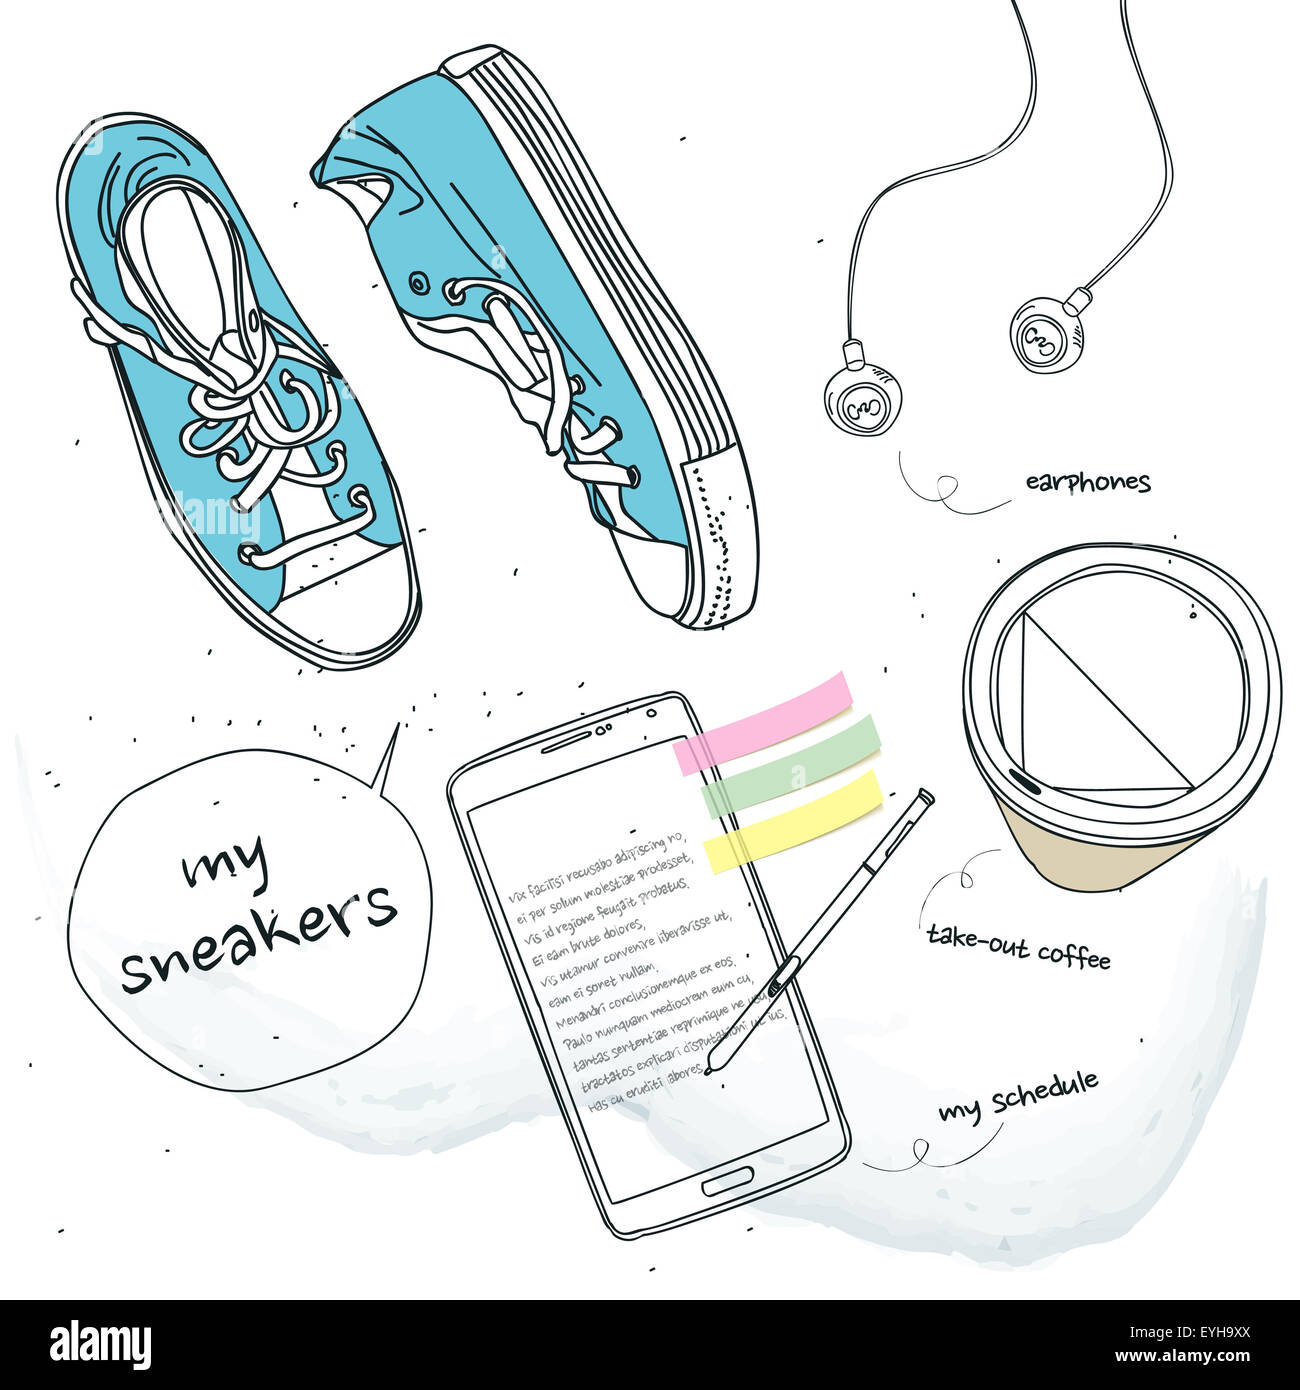 Athletic shoes and cell phones and coffee - Stock Image